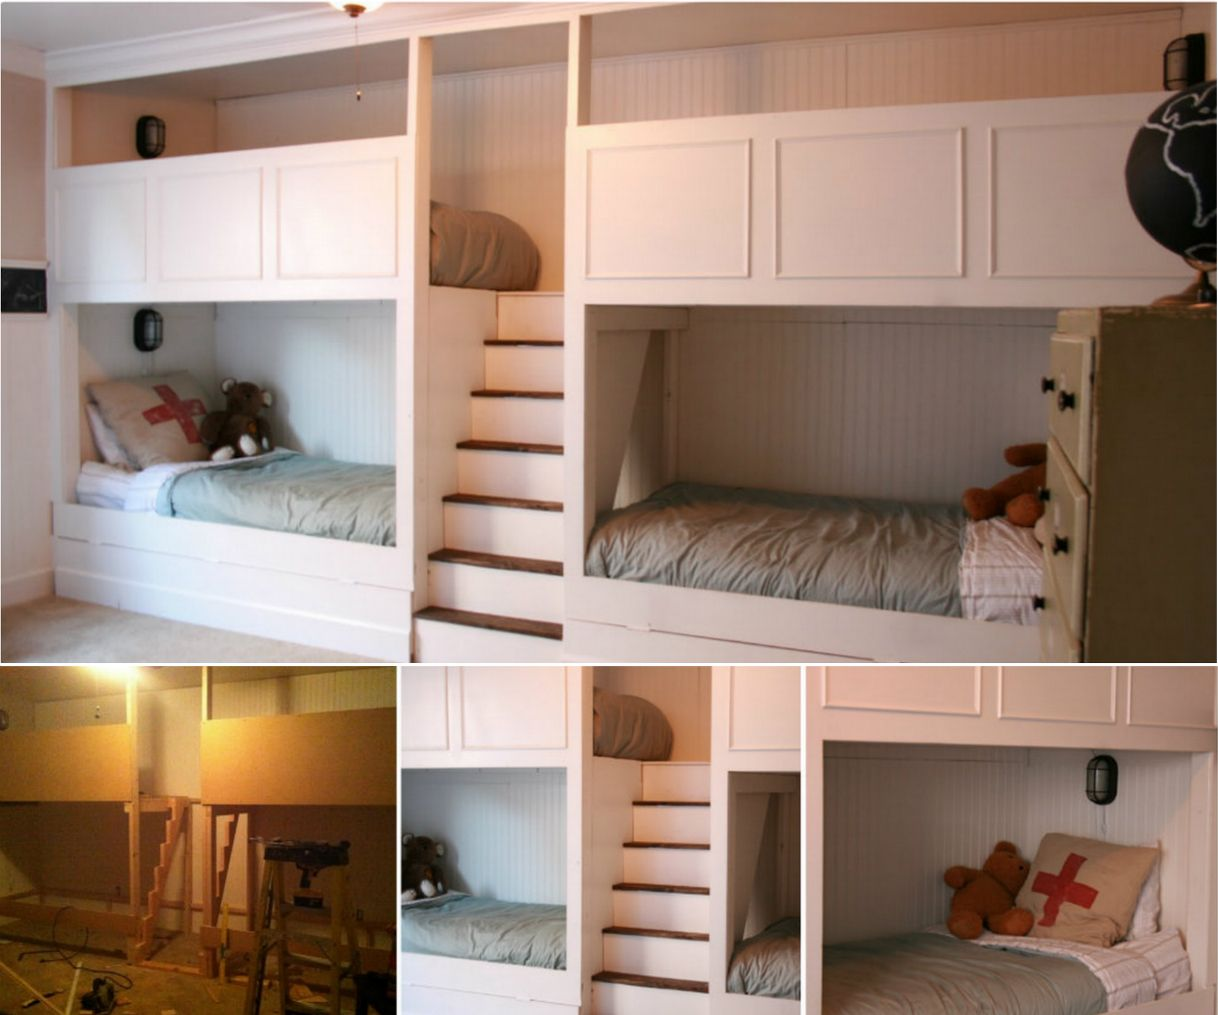 4 Bed Bunk Diy Bunk Bed Bunk Beds Built In Bunk Beds With Stairs